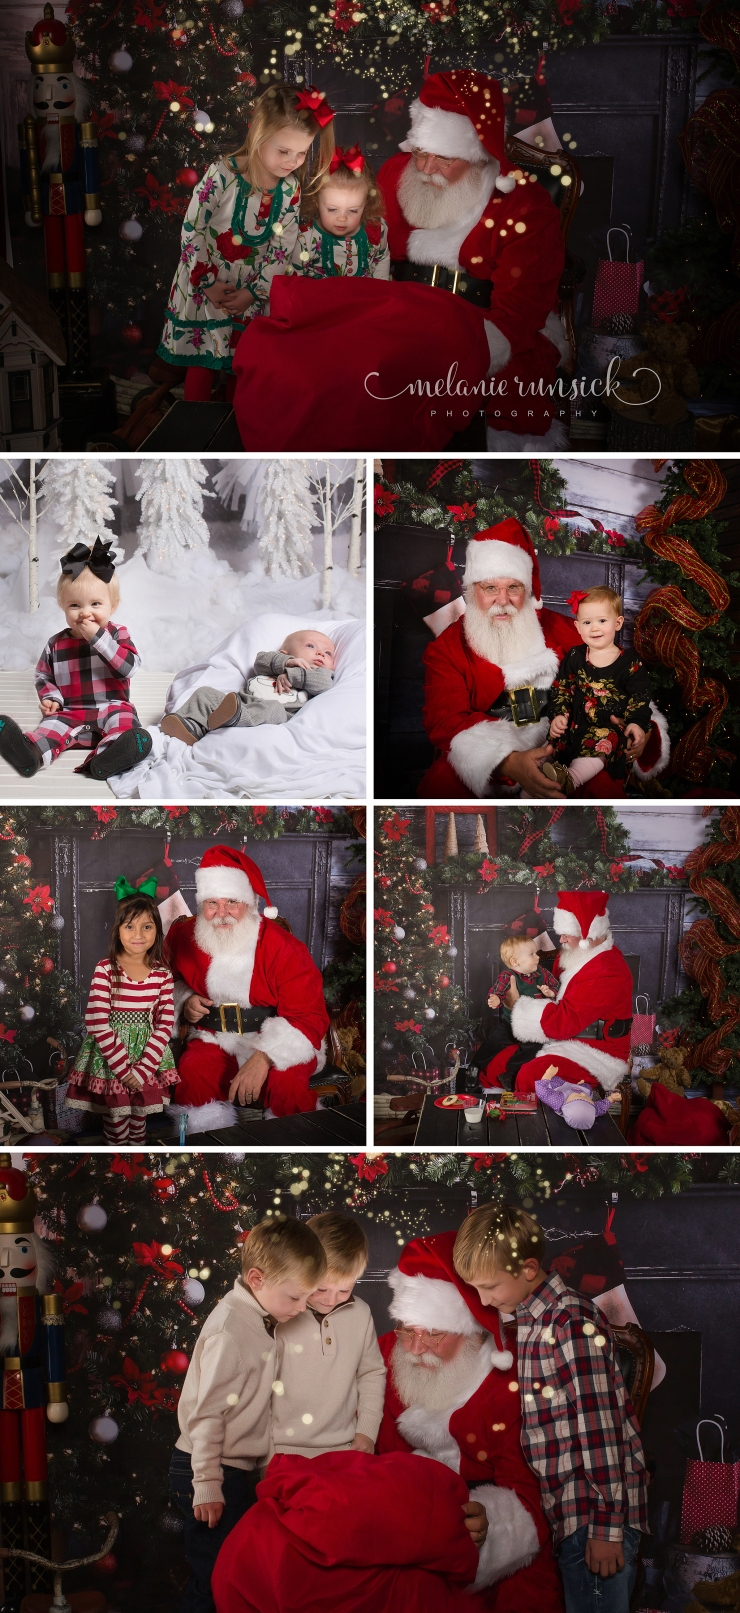 Melanie Runsick Photography Jonesboro AR Cookies with Santa 2017 Winter White Christmas Portrait Sessions